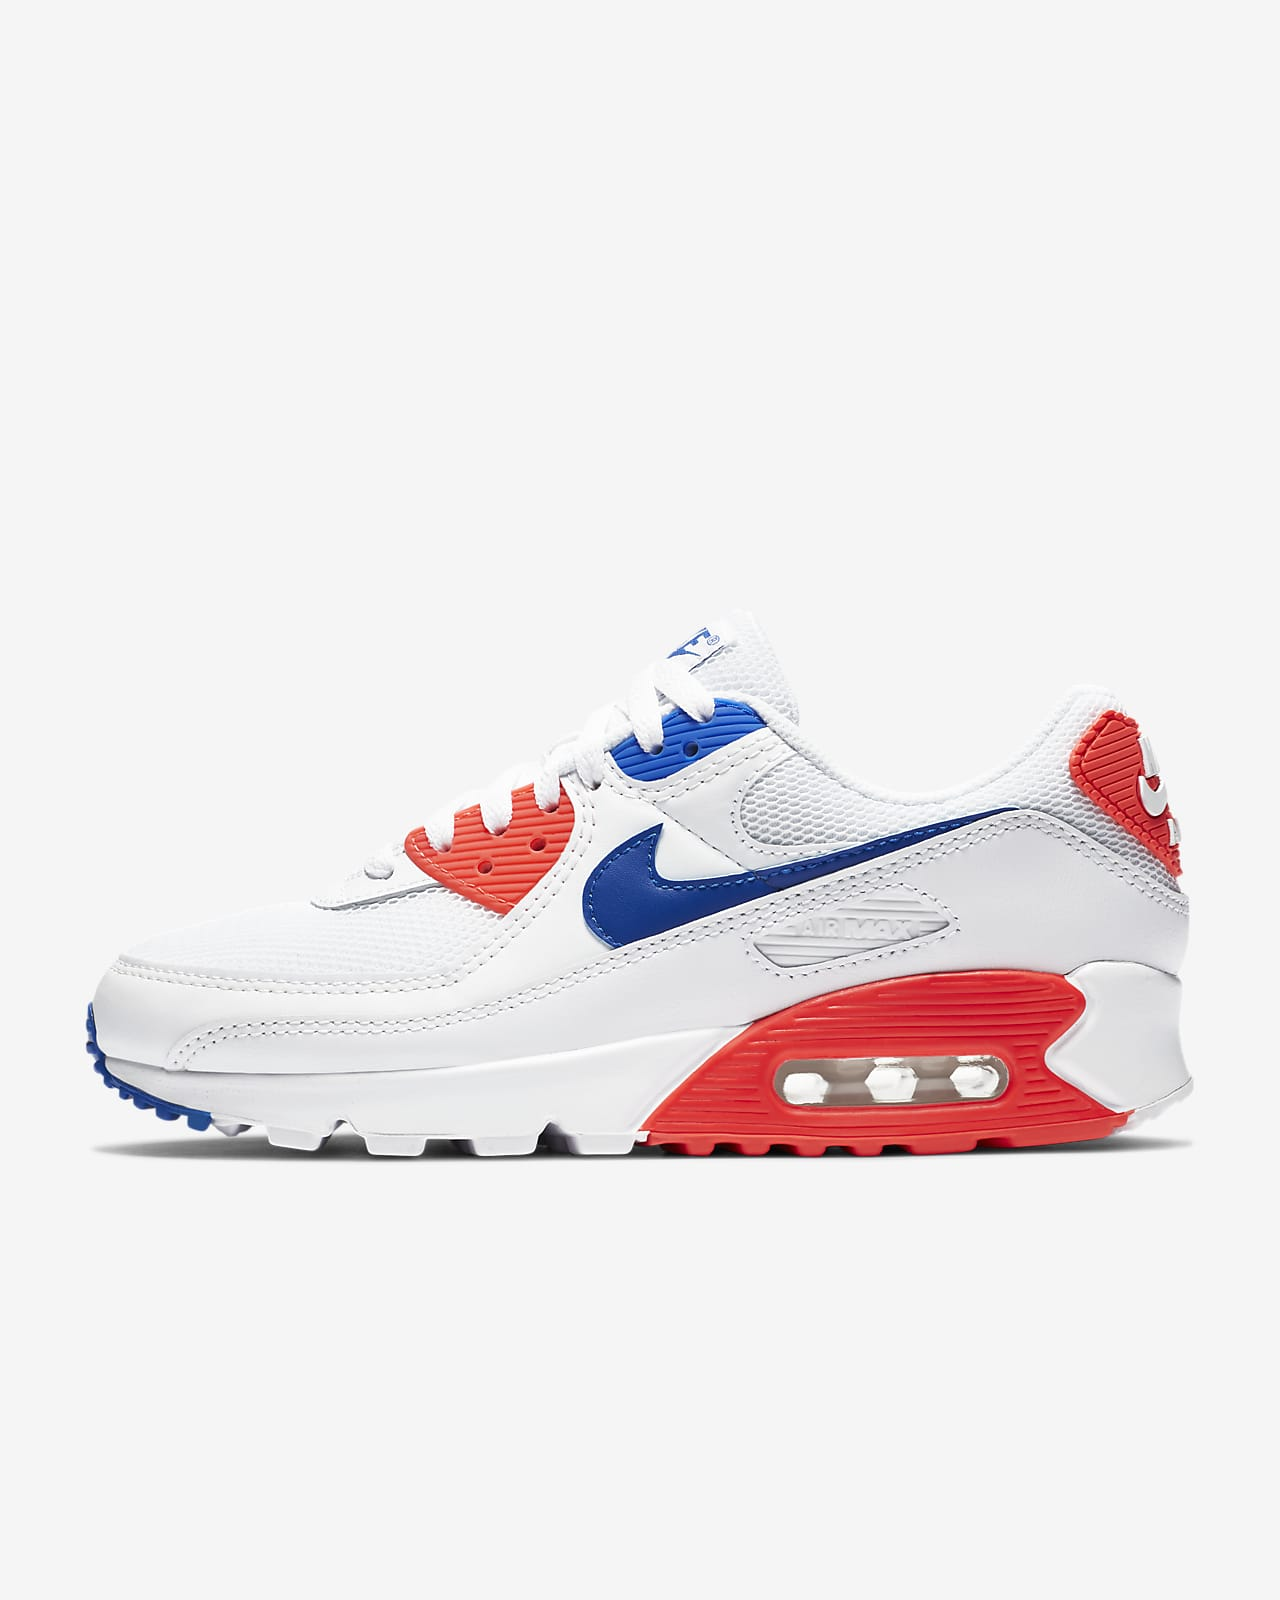 Nike Air Max 90 Damenschuh. Nike AT